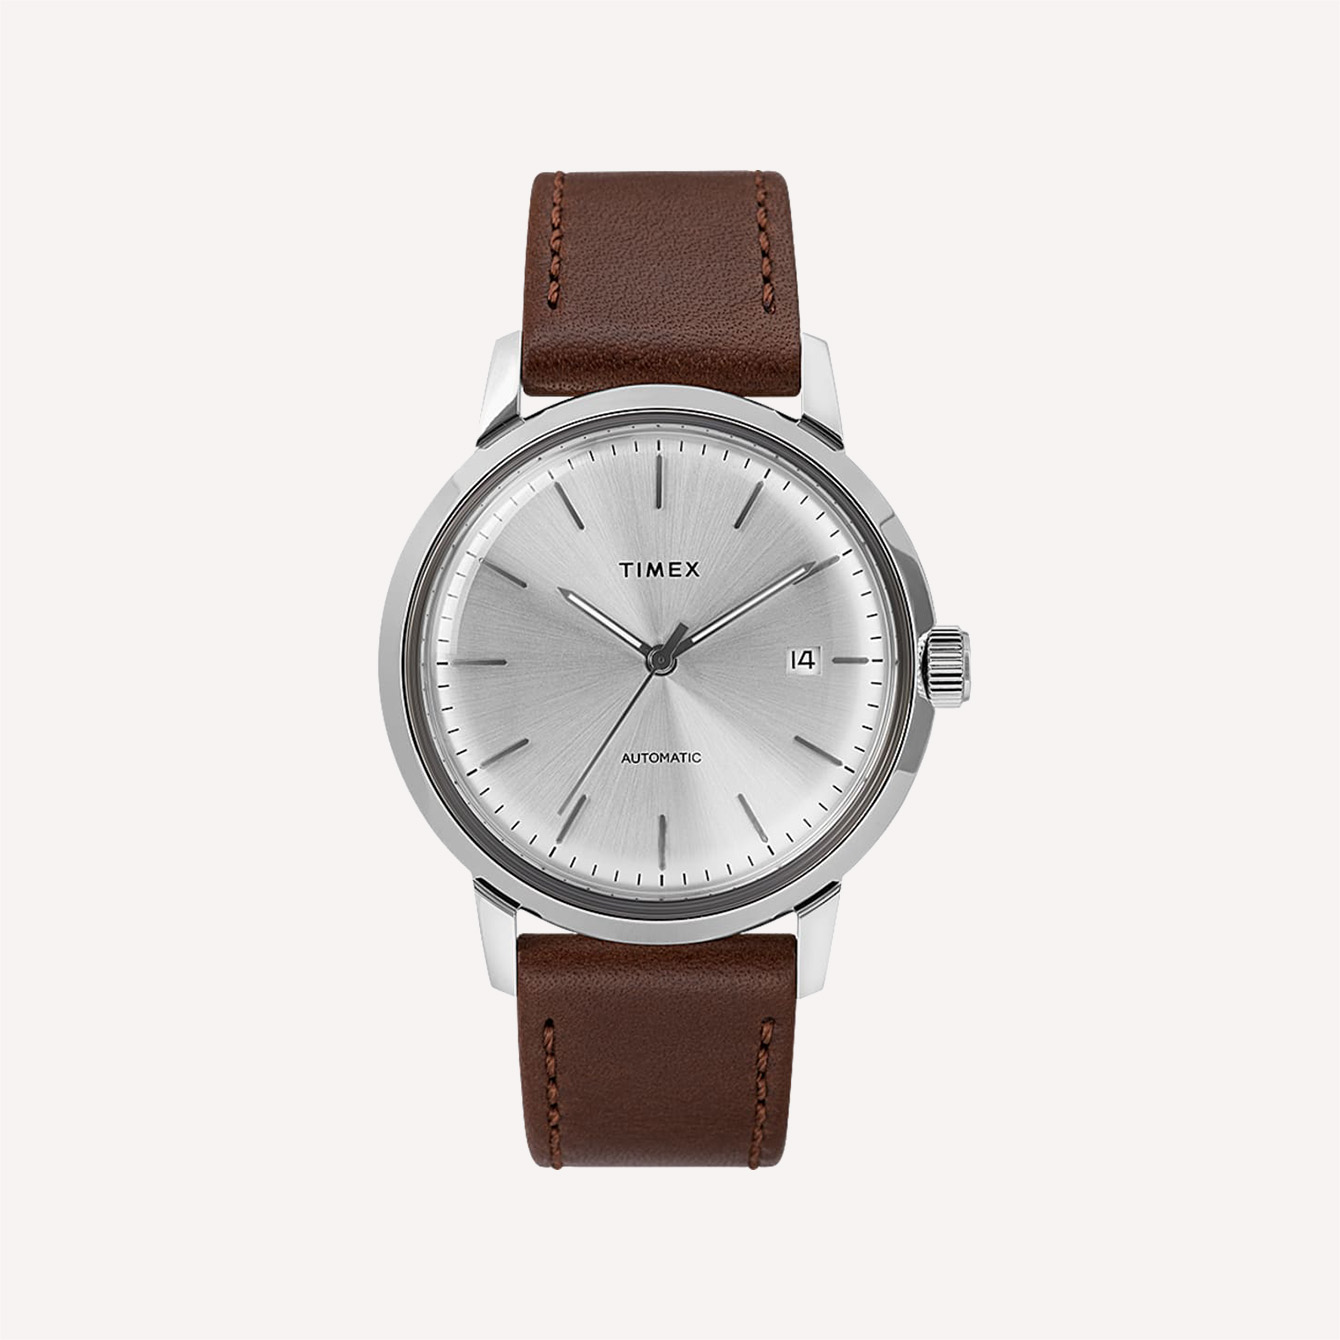 MARLIN AUTOMATIC 40MM LEATHER STRAP WATCH